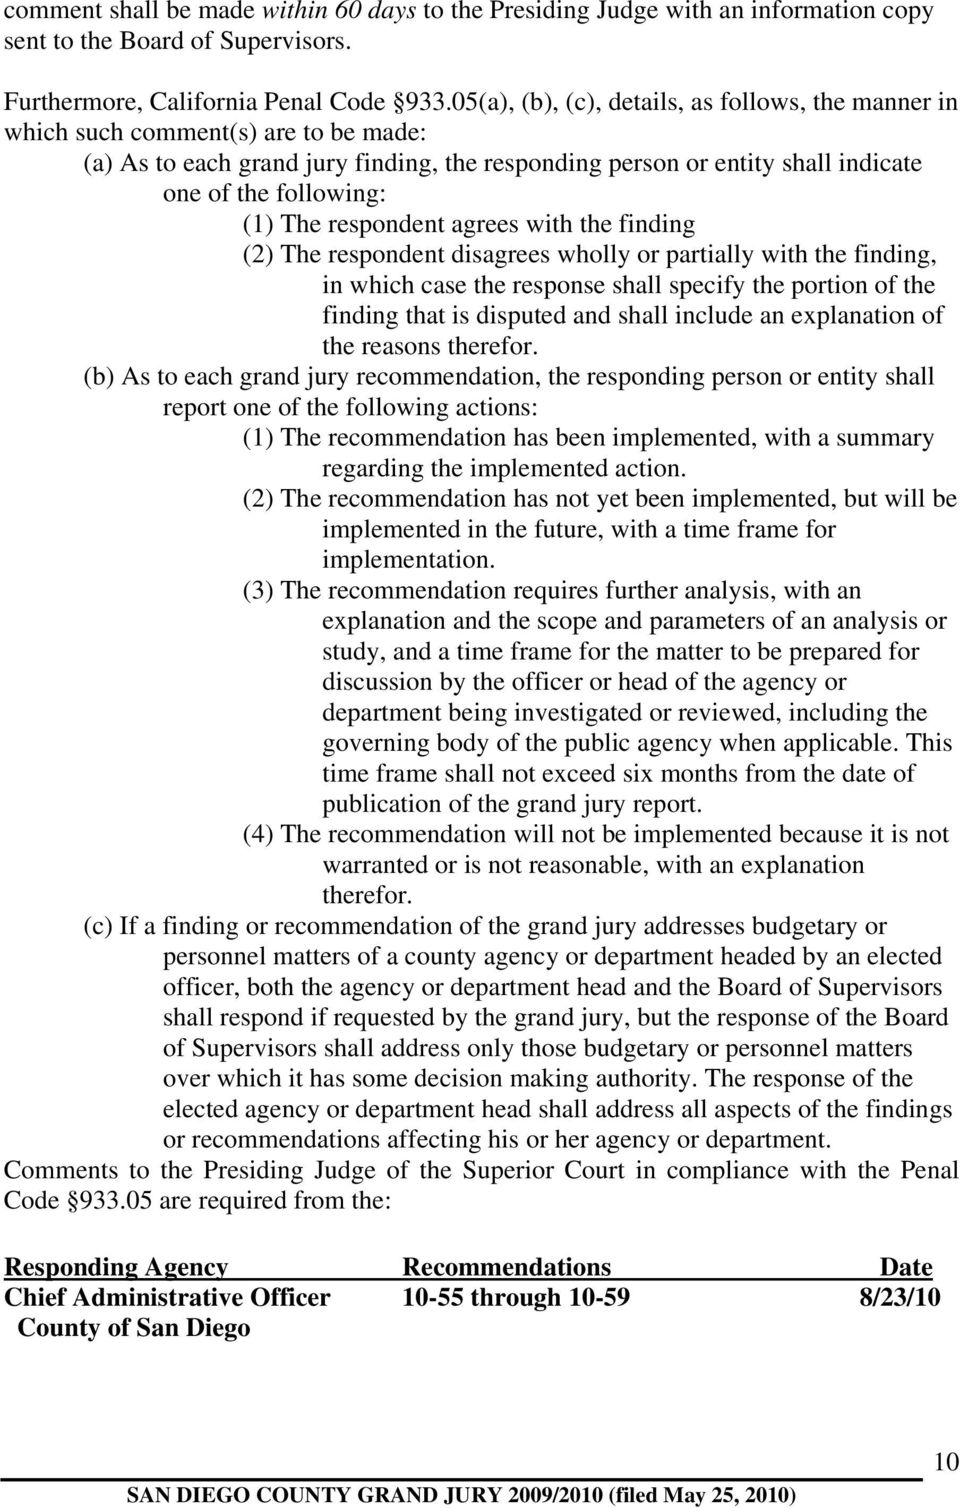 The respondent agrees with the finding (2) The respondent disagrees wholly or partially with the finding, in which case the response shall specify the portion of the finding that is disputed and